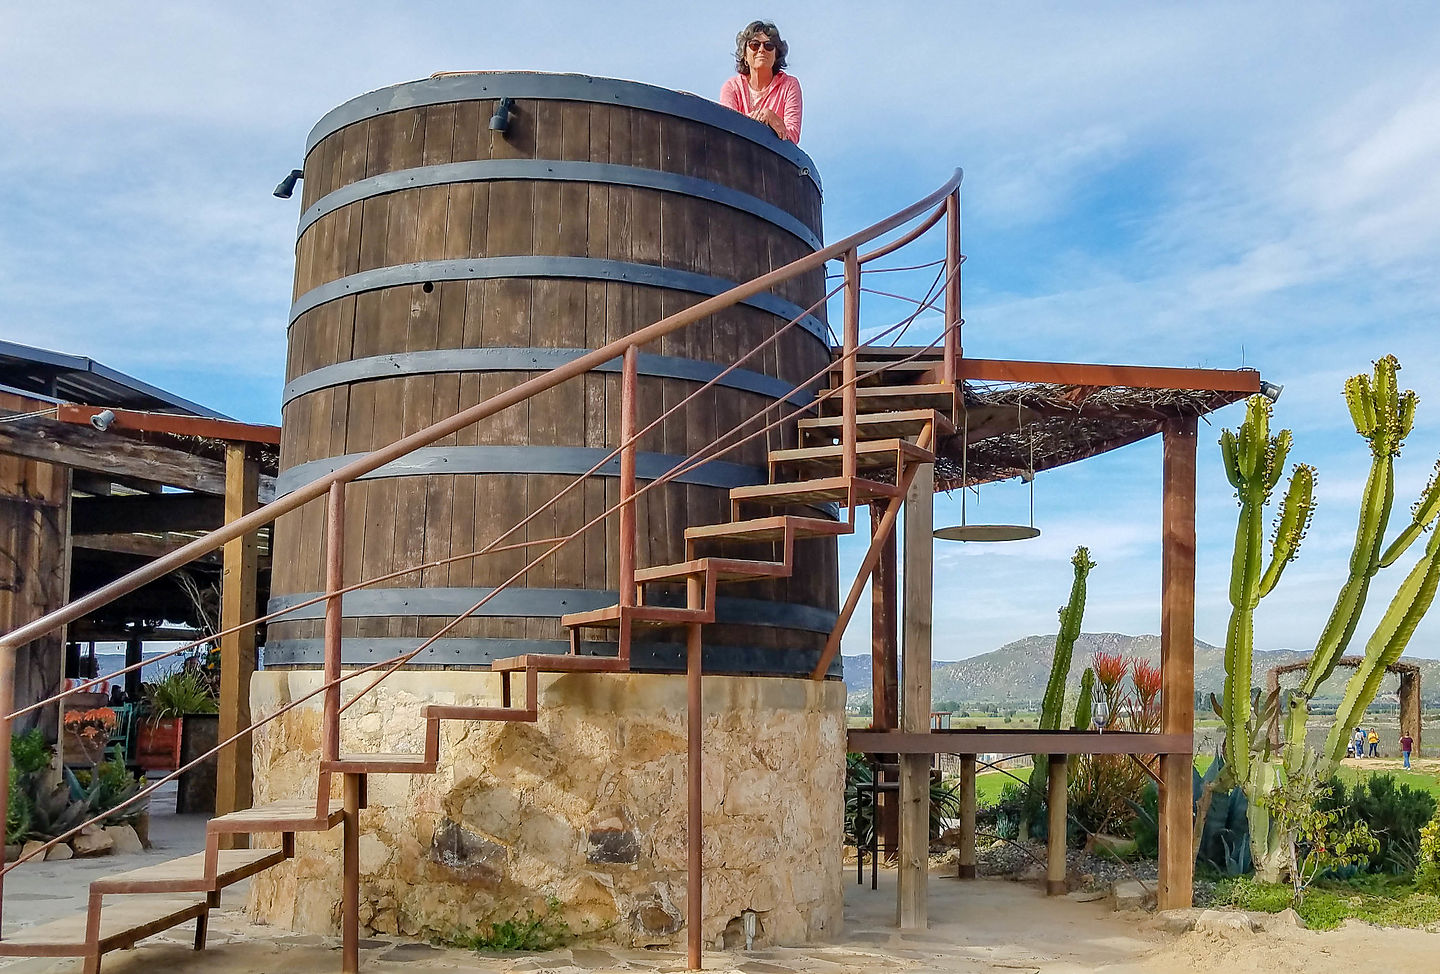 Lolo enjoying the view from atop a wine barrel at Finca Altozano in the Valle de Guadalupe